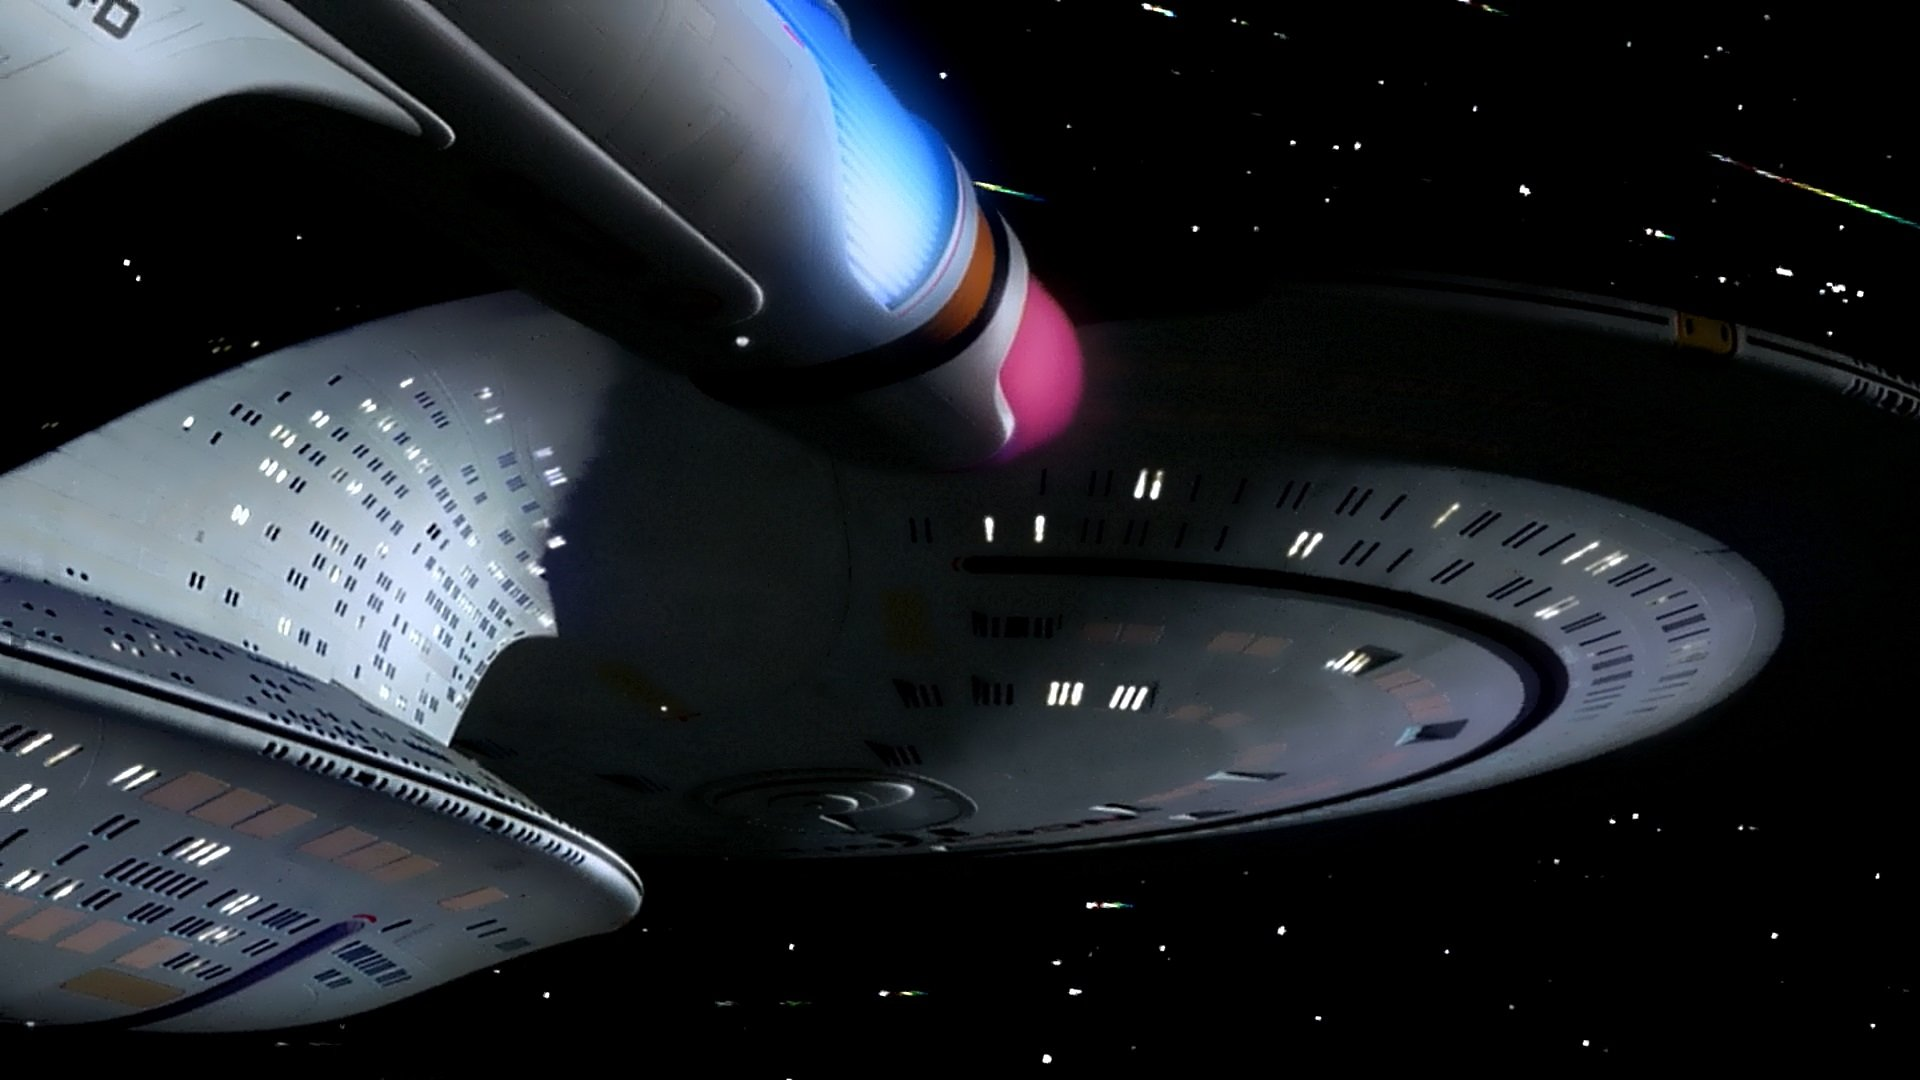 Star Trek The Next Generation Wallpapers 1920x1080 Full Hd 1080p